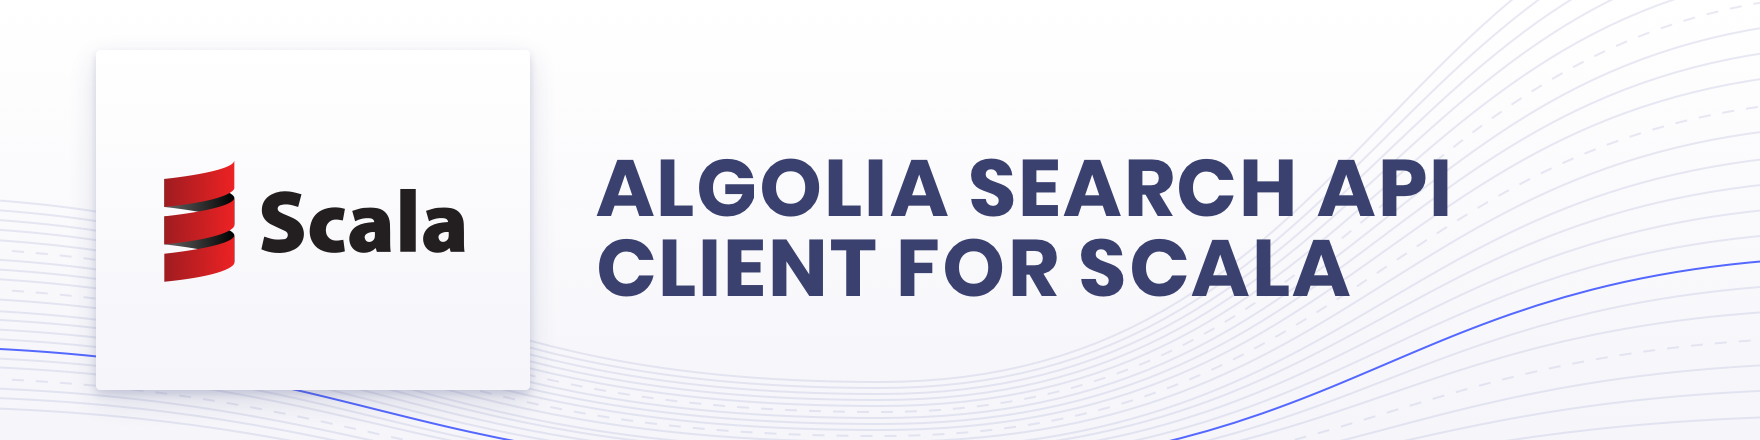 Algolia for Scala